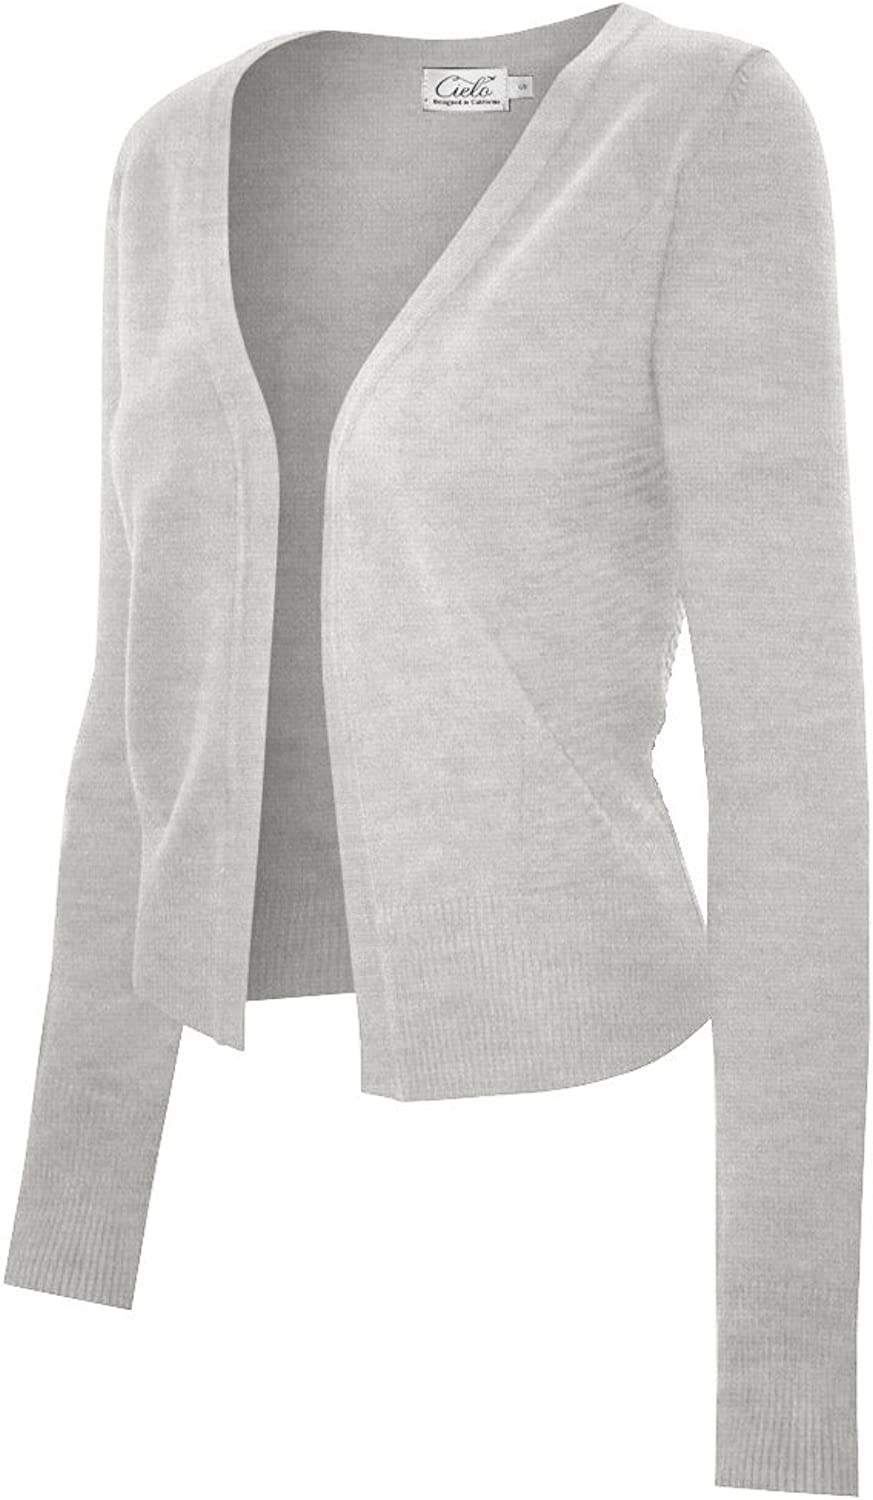 Women's Open Front Long Sleeve Knit Cropped Cardigan with Side Pannels